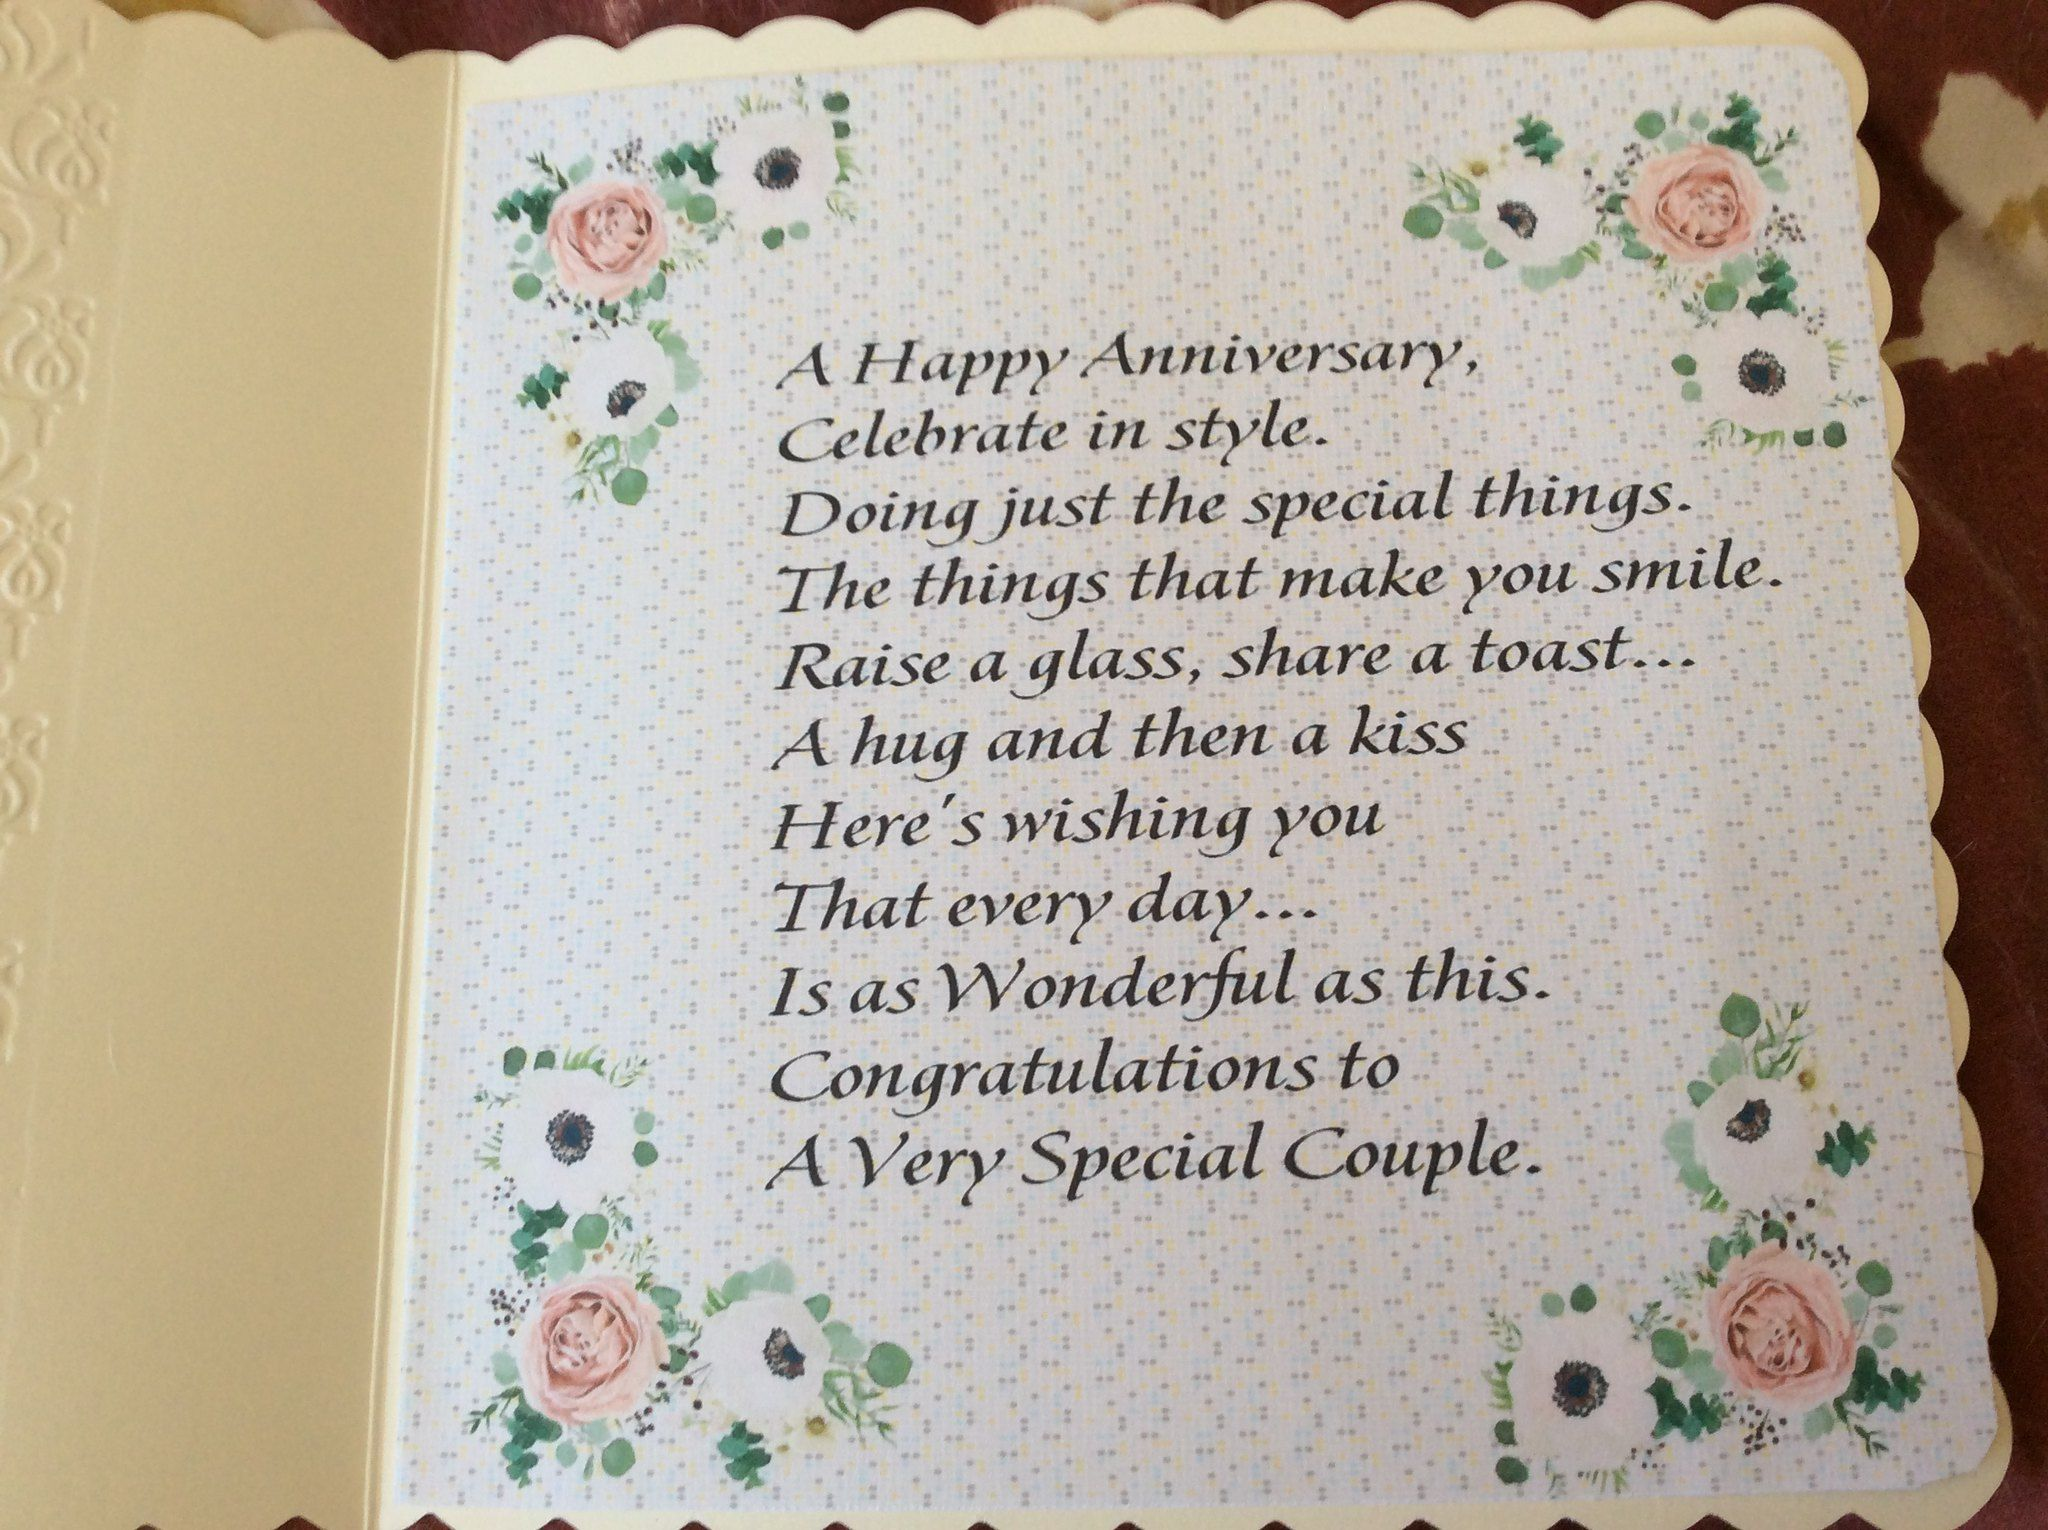 Verse Inside The Floral Anniversary Card Anniversary Verses Anniversary Cards Wedding Anniversary Cards